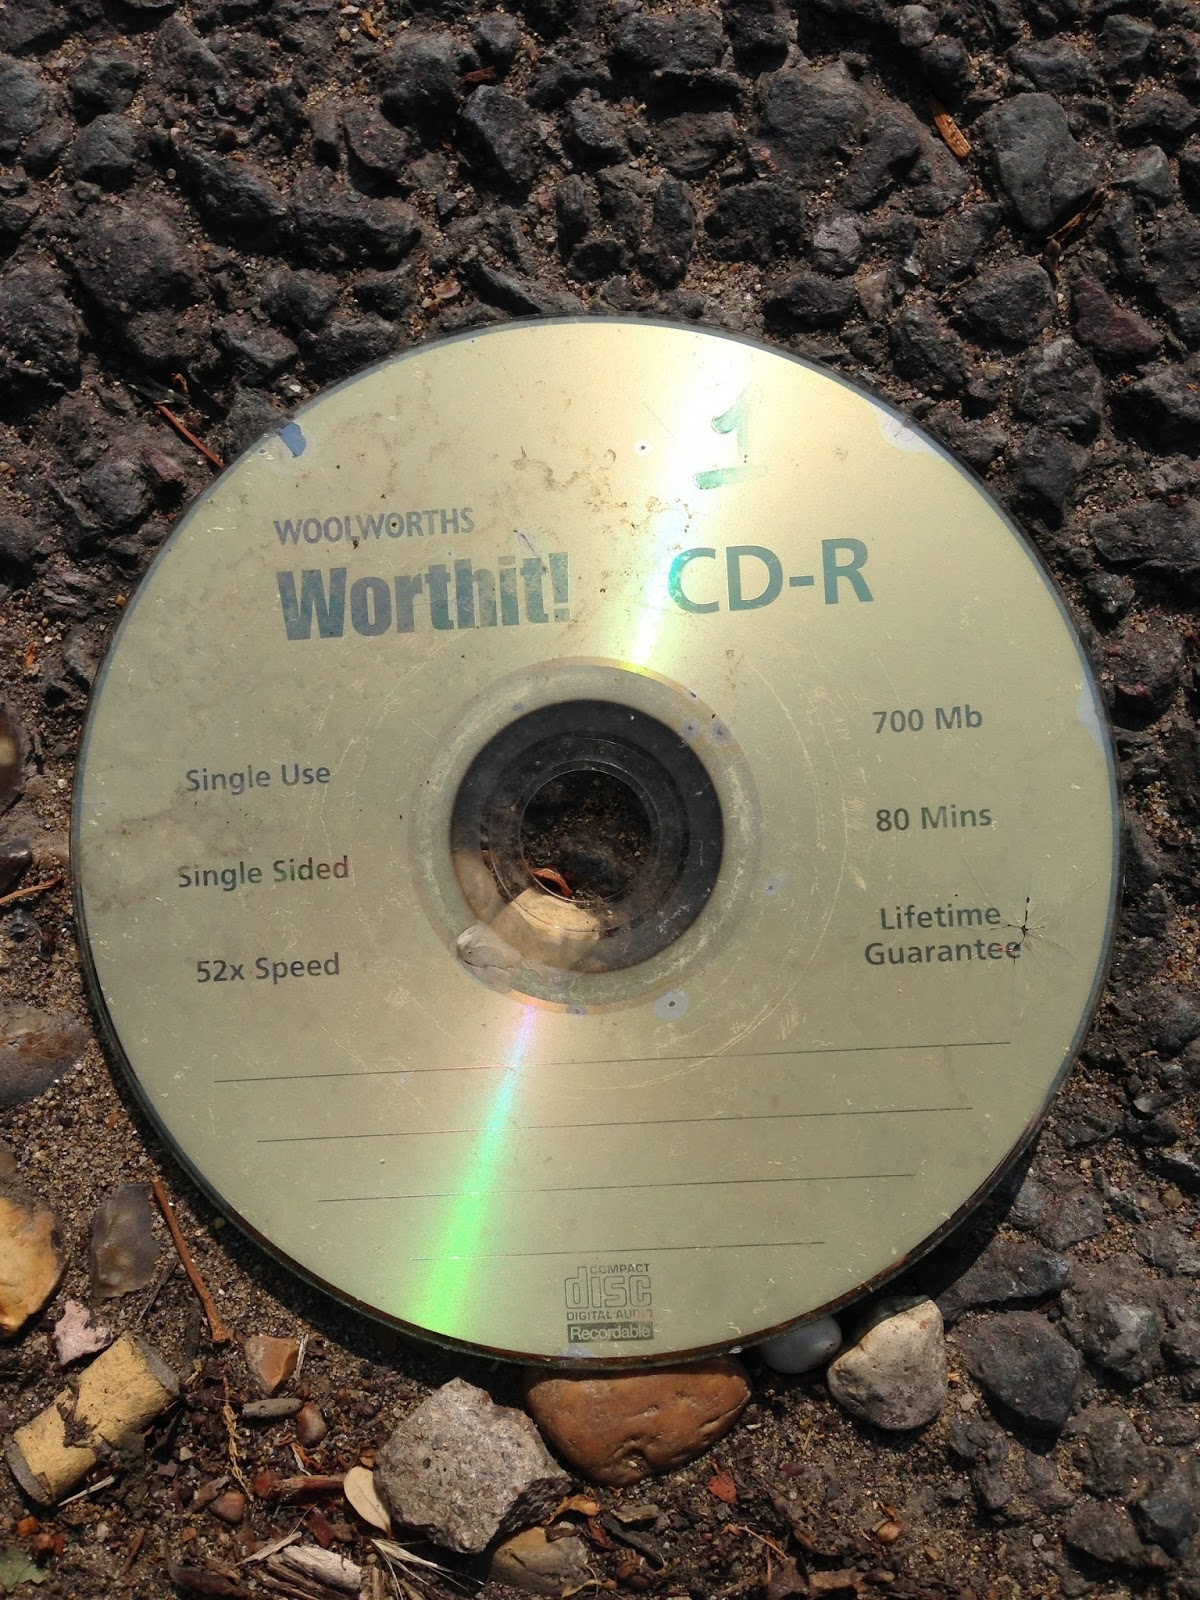 Abandoned Cds 090715 Woolworths Worthit